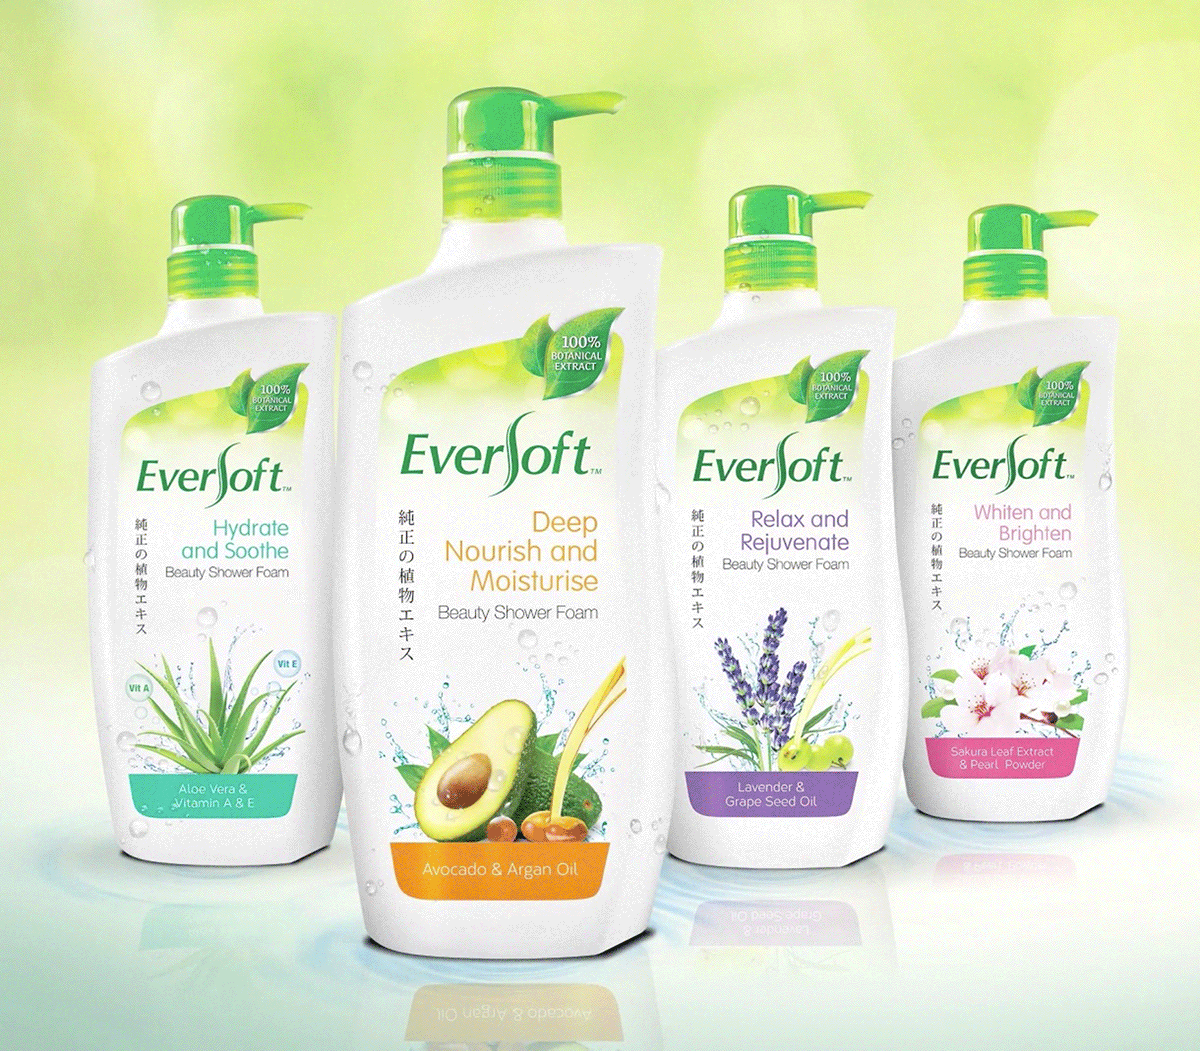 Eversoft new packaging